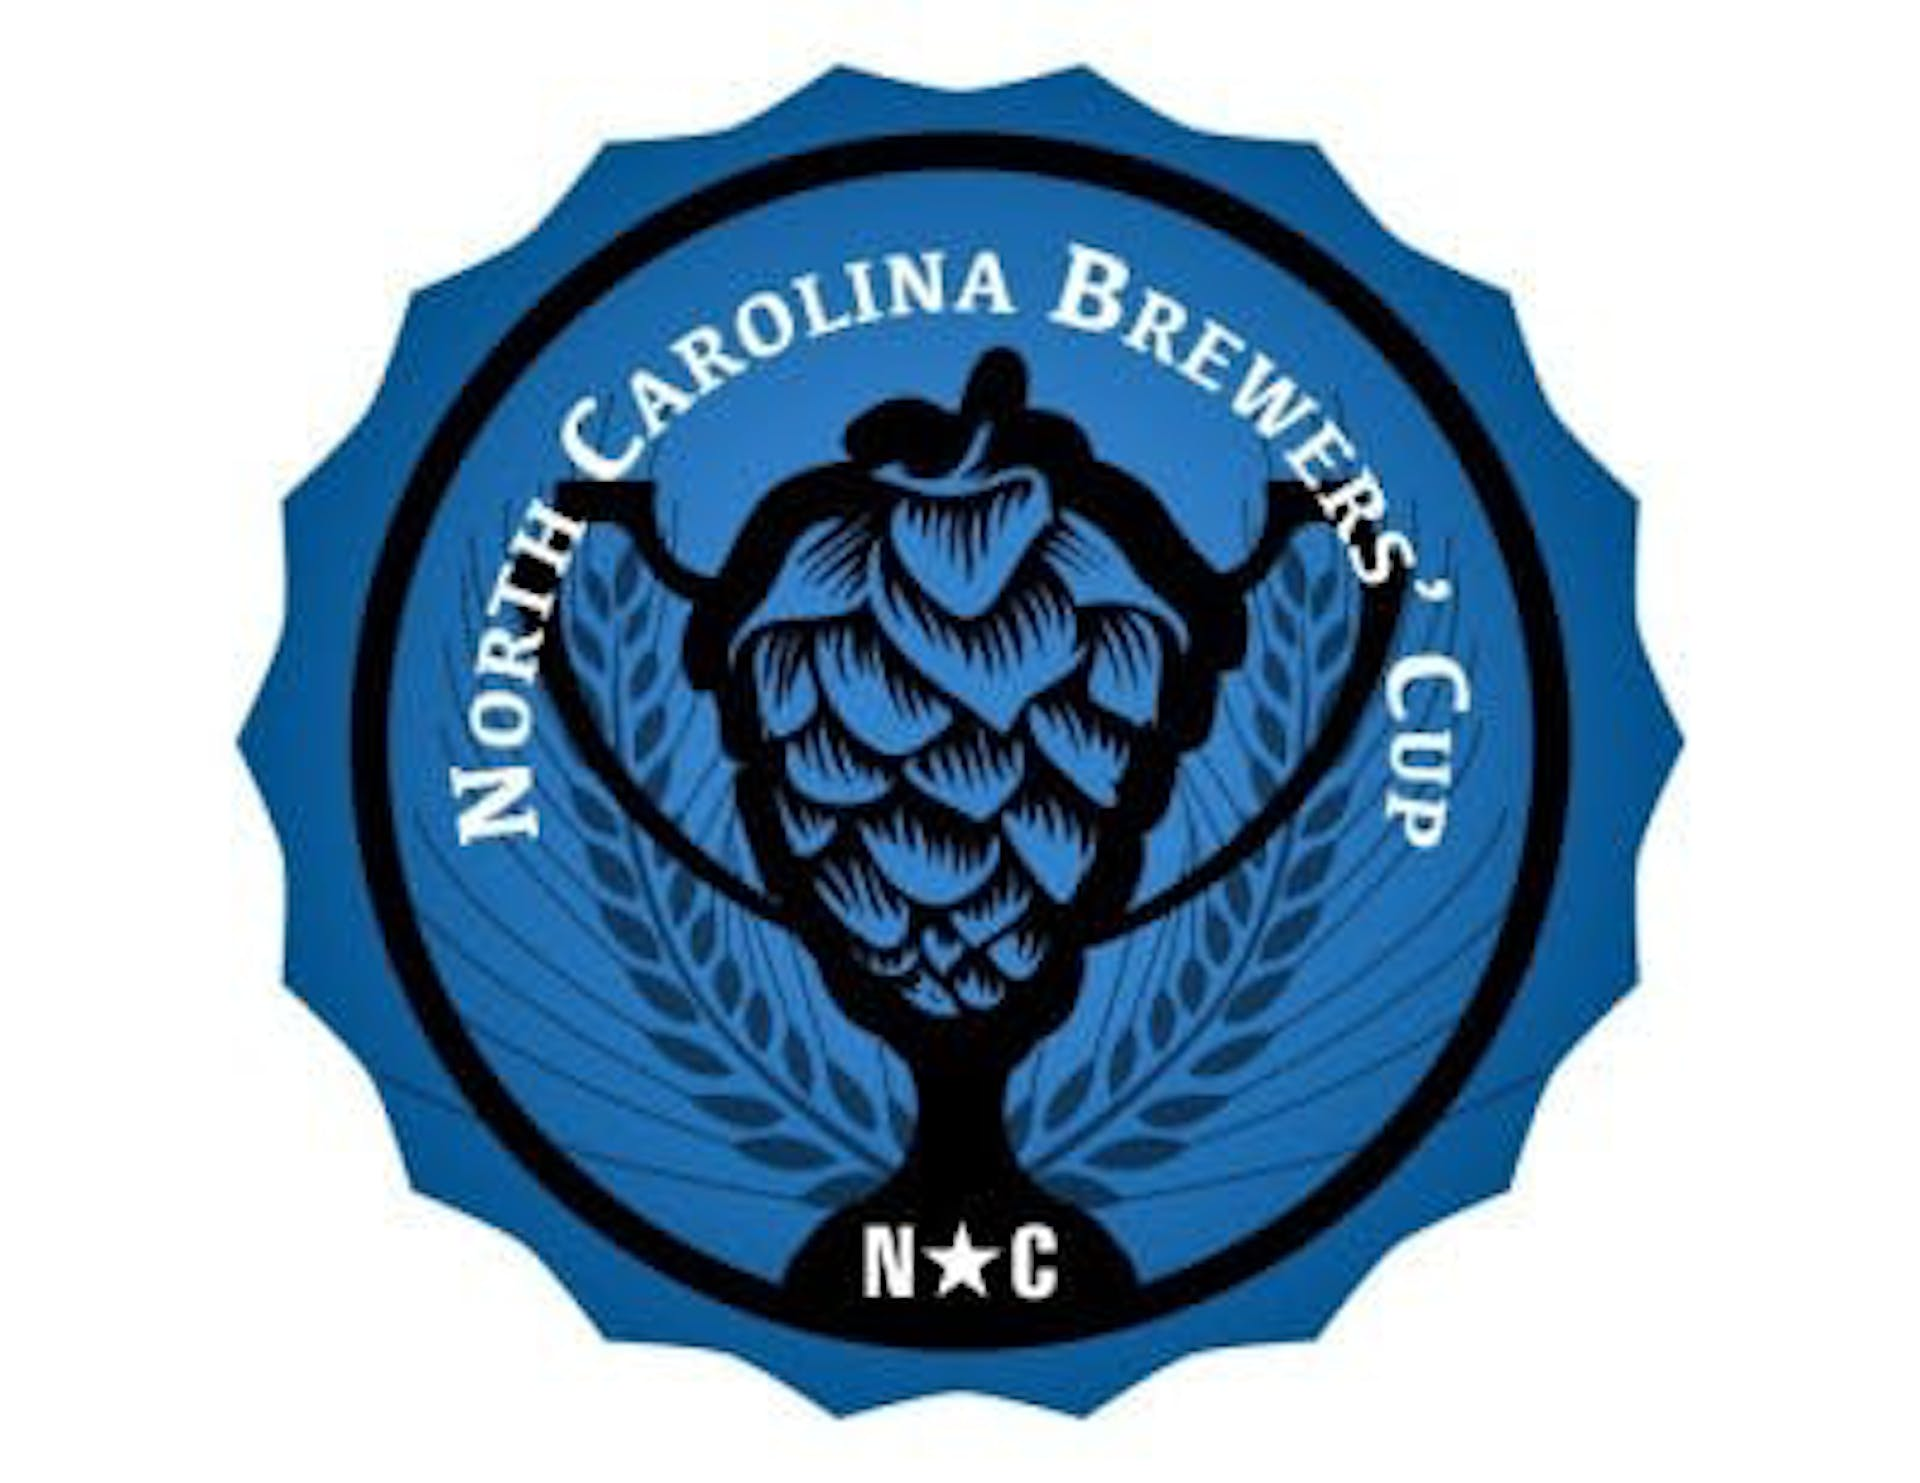 nc_brewers_cup_logo-e1444429489771